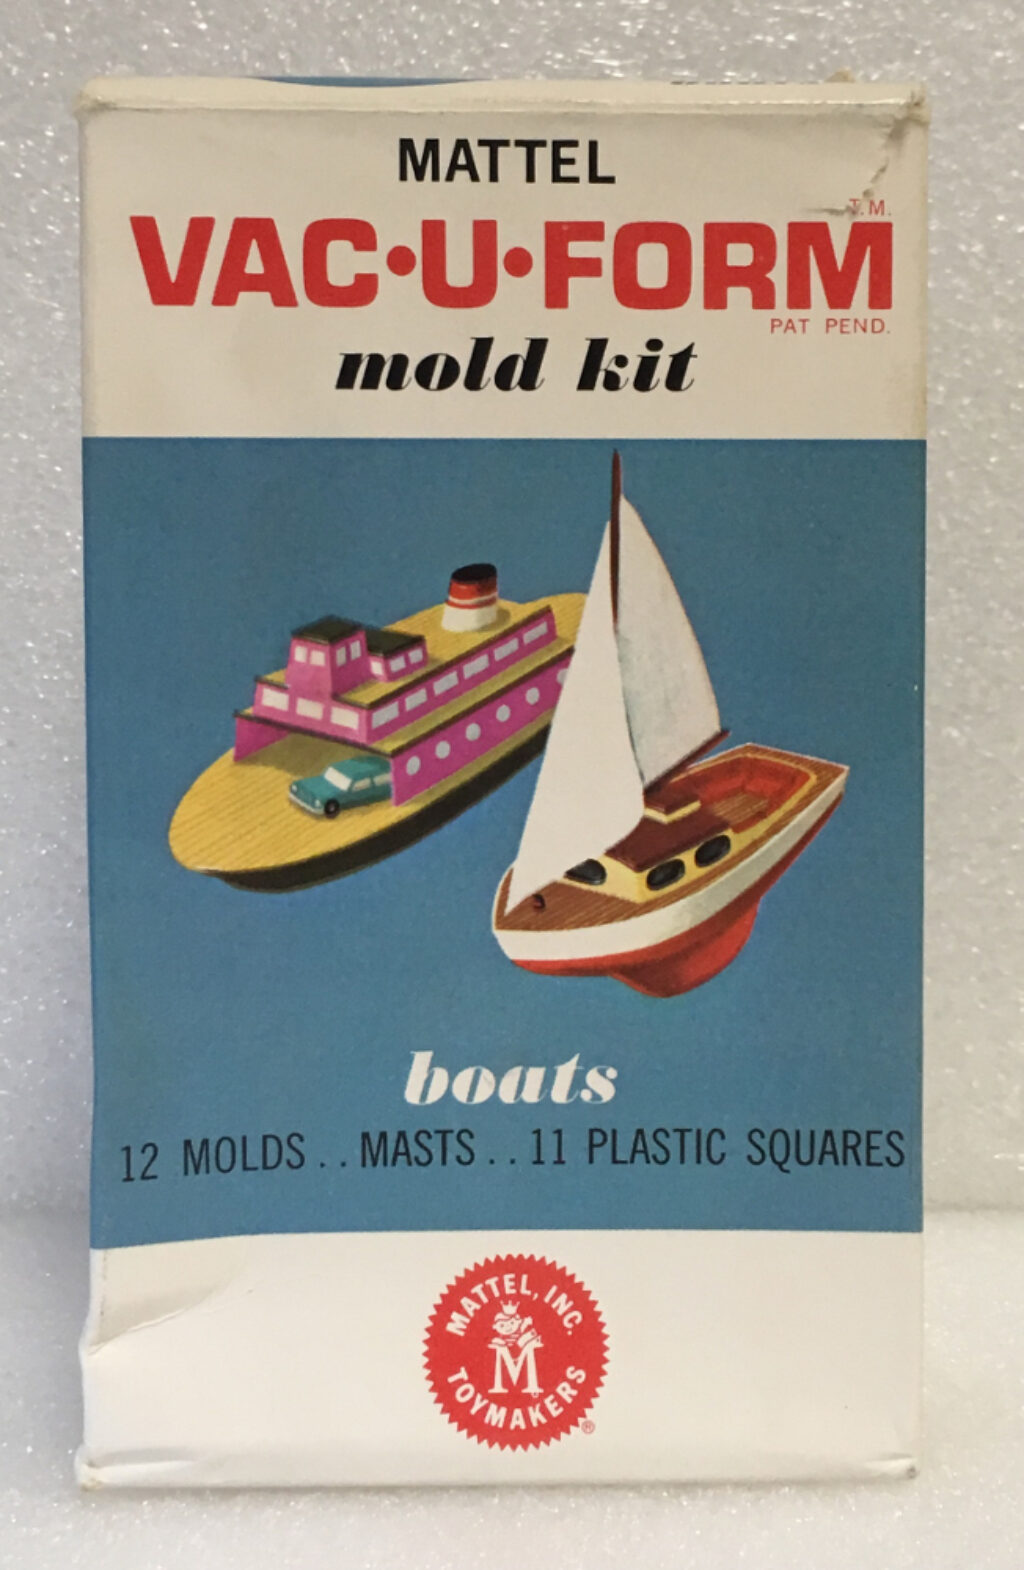 vac-u-form boats mold kit 1